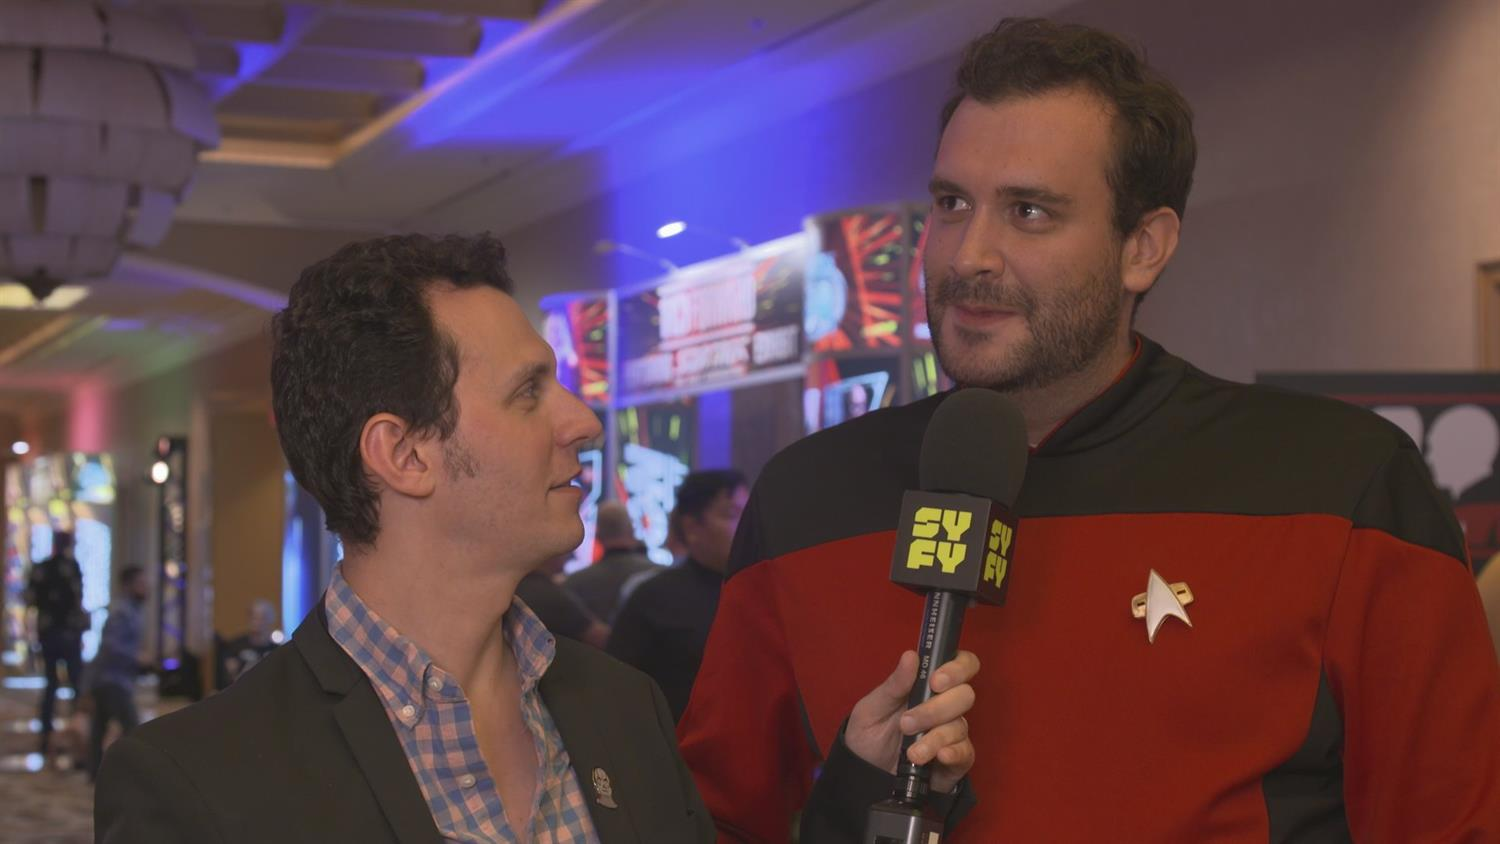 Star Trek: The Next Generation Fans on Why They Love the Show